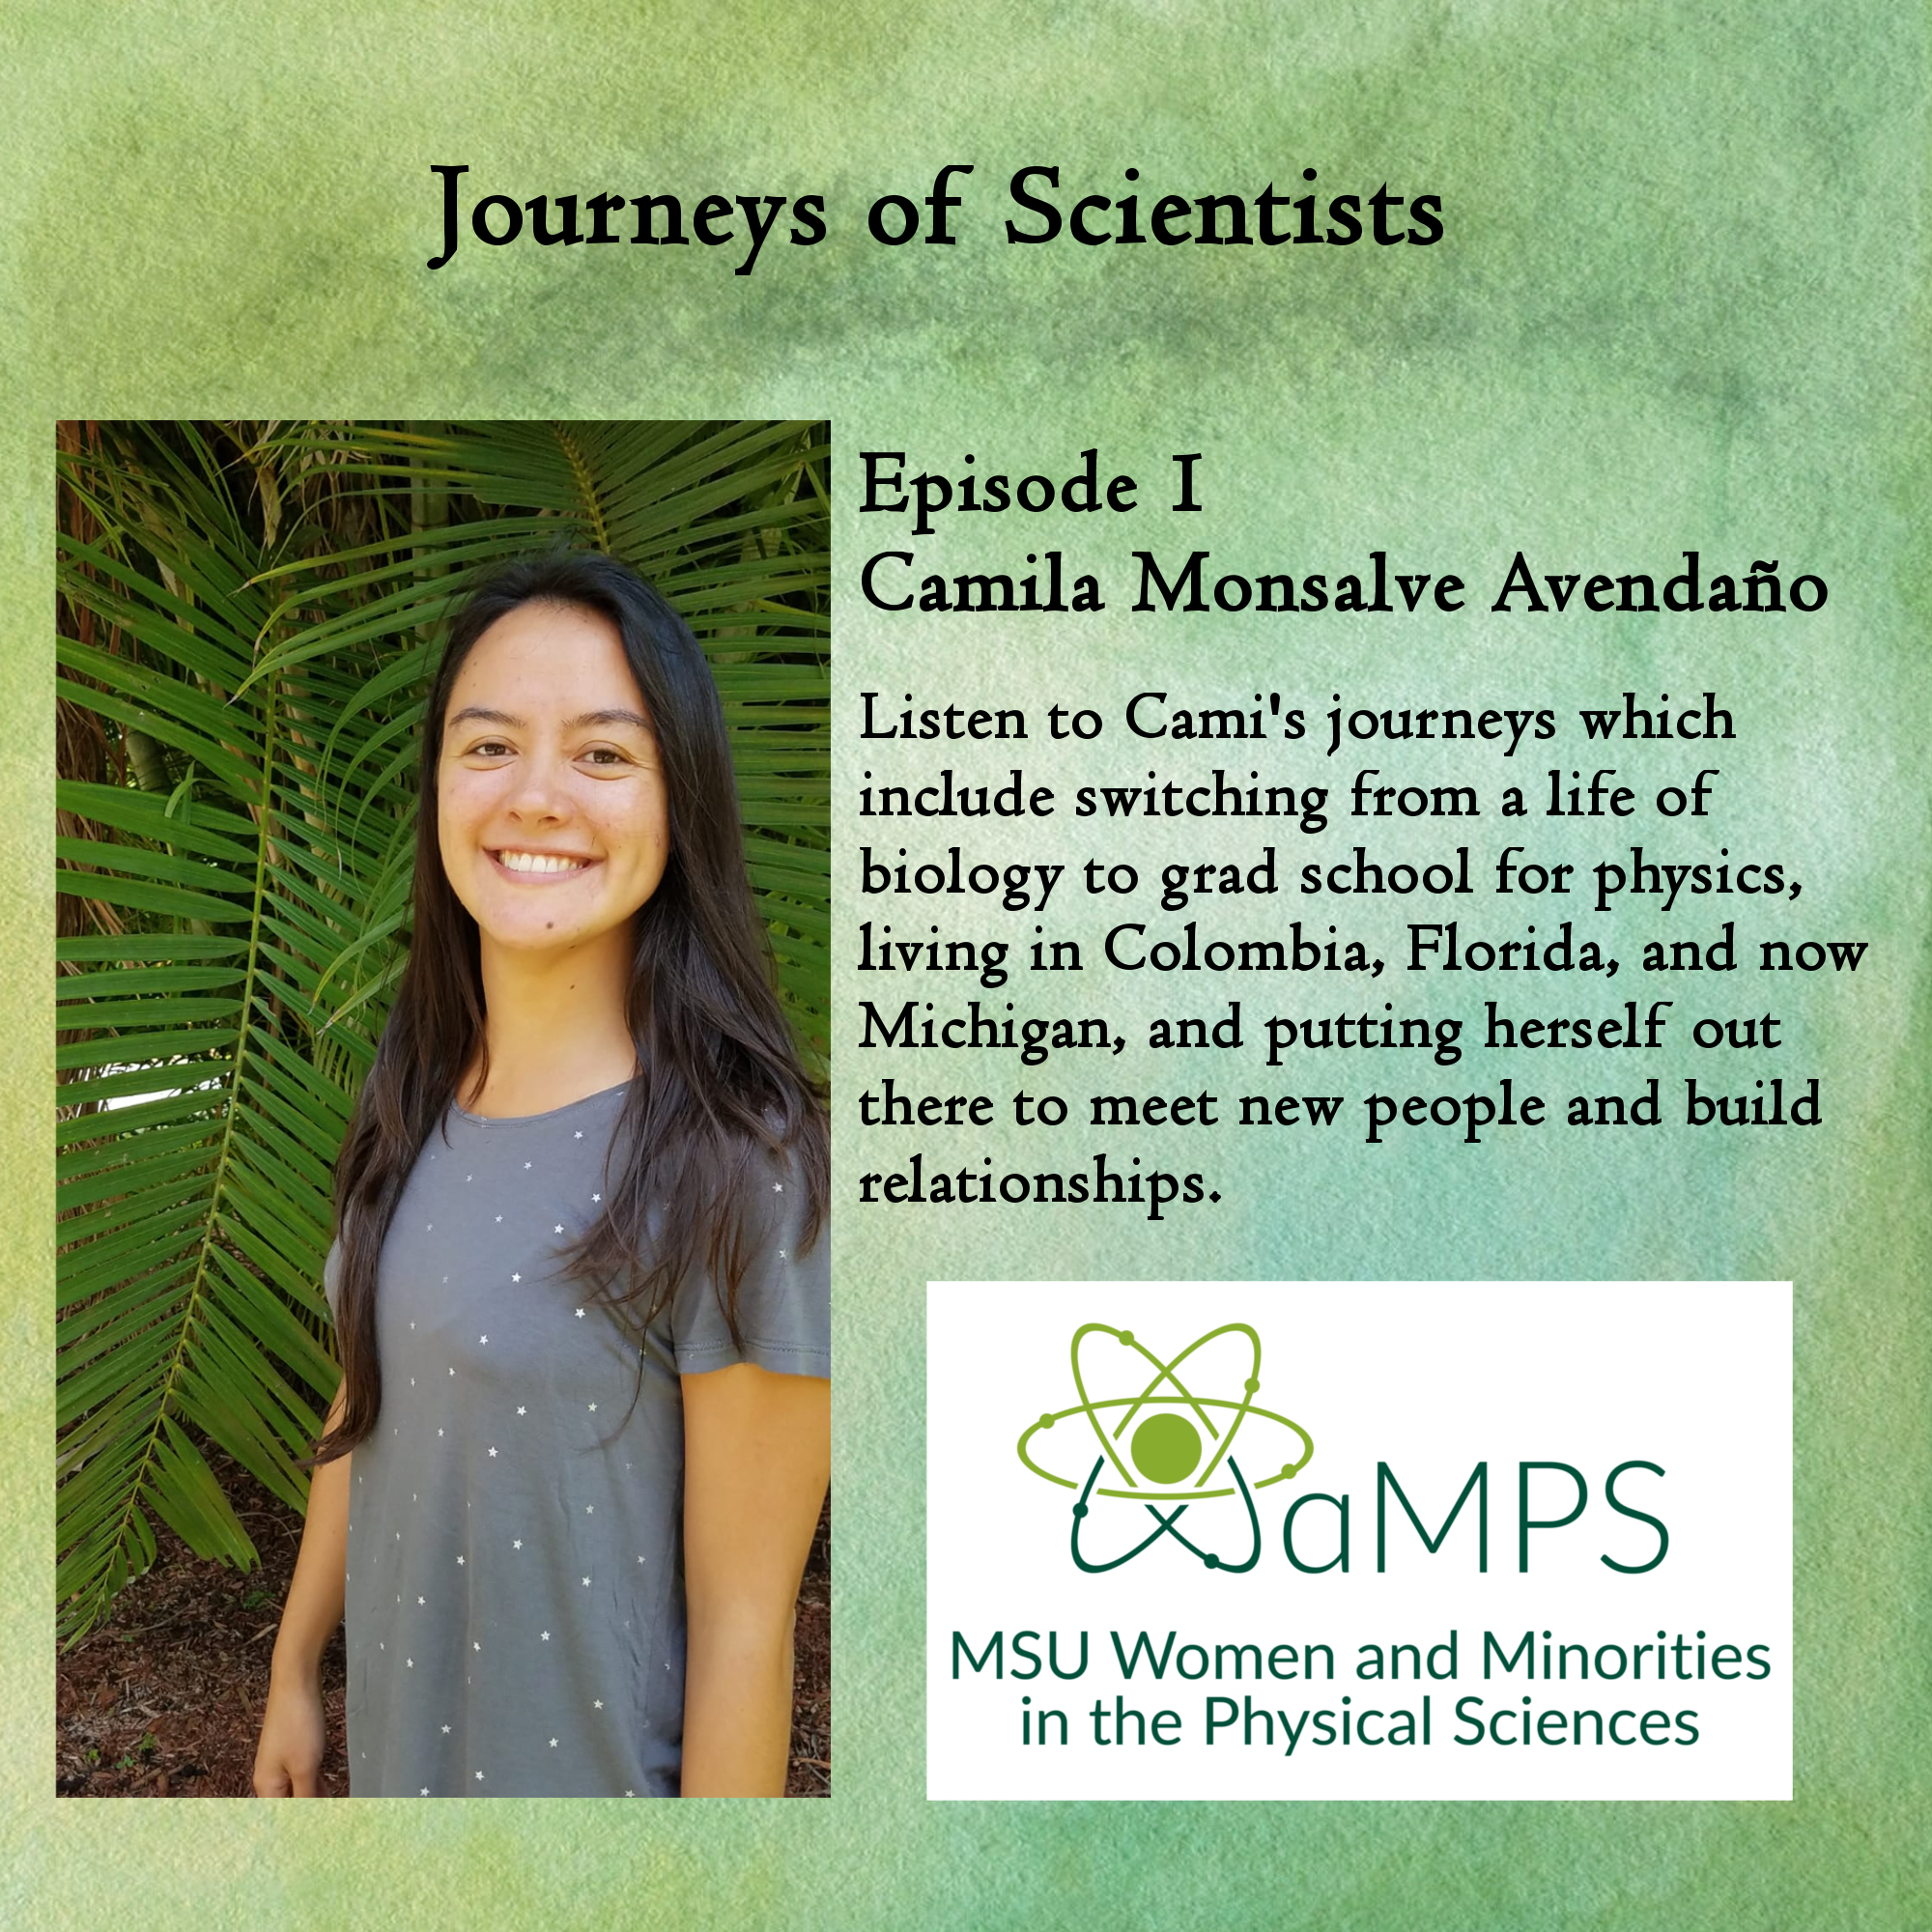 Cami is a second-year graduate student in the Physics Education Research Lab at MSU. Her current research focus is on students of Color with transfer credits earning STEM degrees at MSU. Her previous research focus has been gender studies using statistical analysis. Listen to Cami's journeys which include switching from a life of biology to grad school for physics, living in Colombia, Florida, and not Michigan, and putting herself out there to meet new people and build relationships.